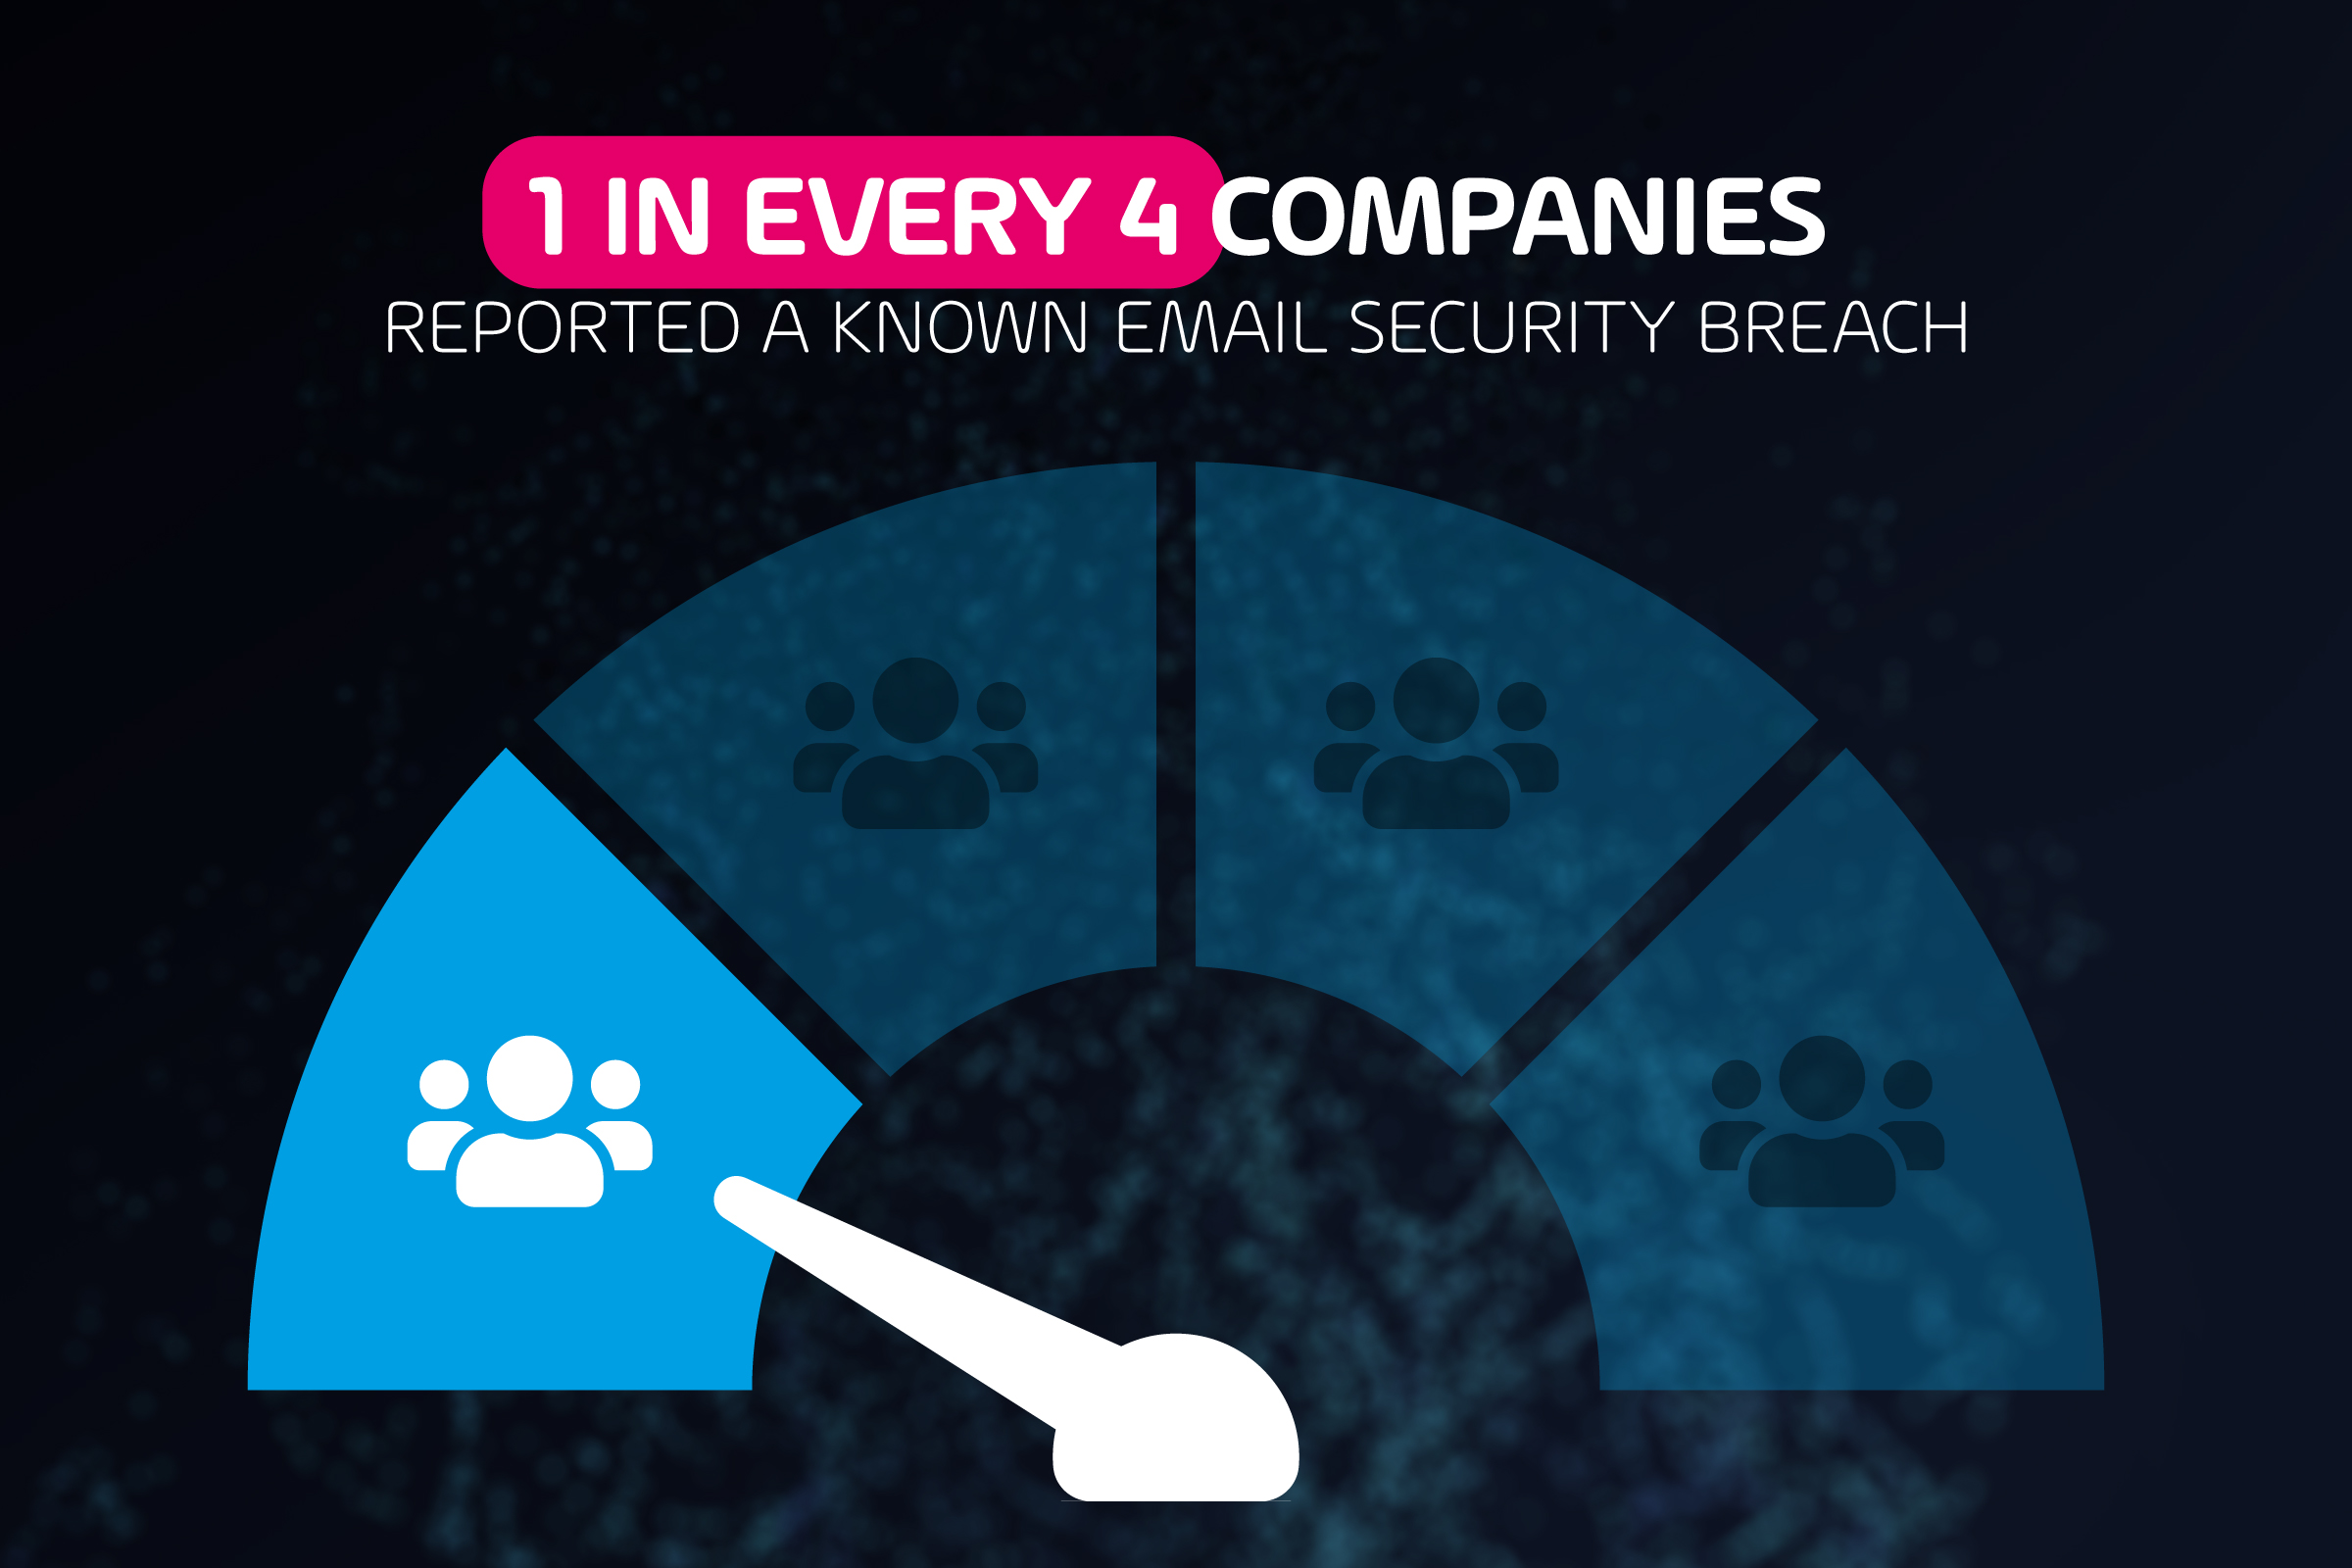 Reported Email Security Breach